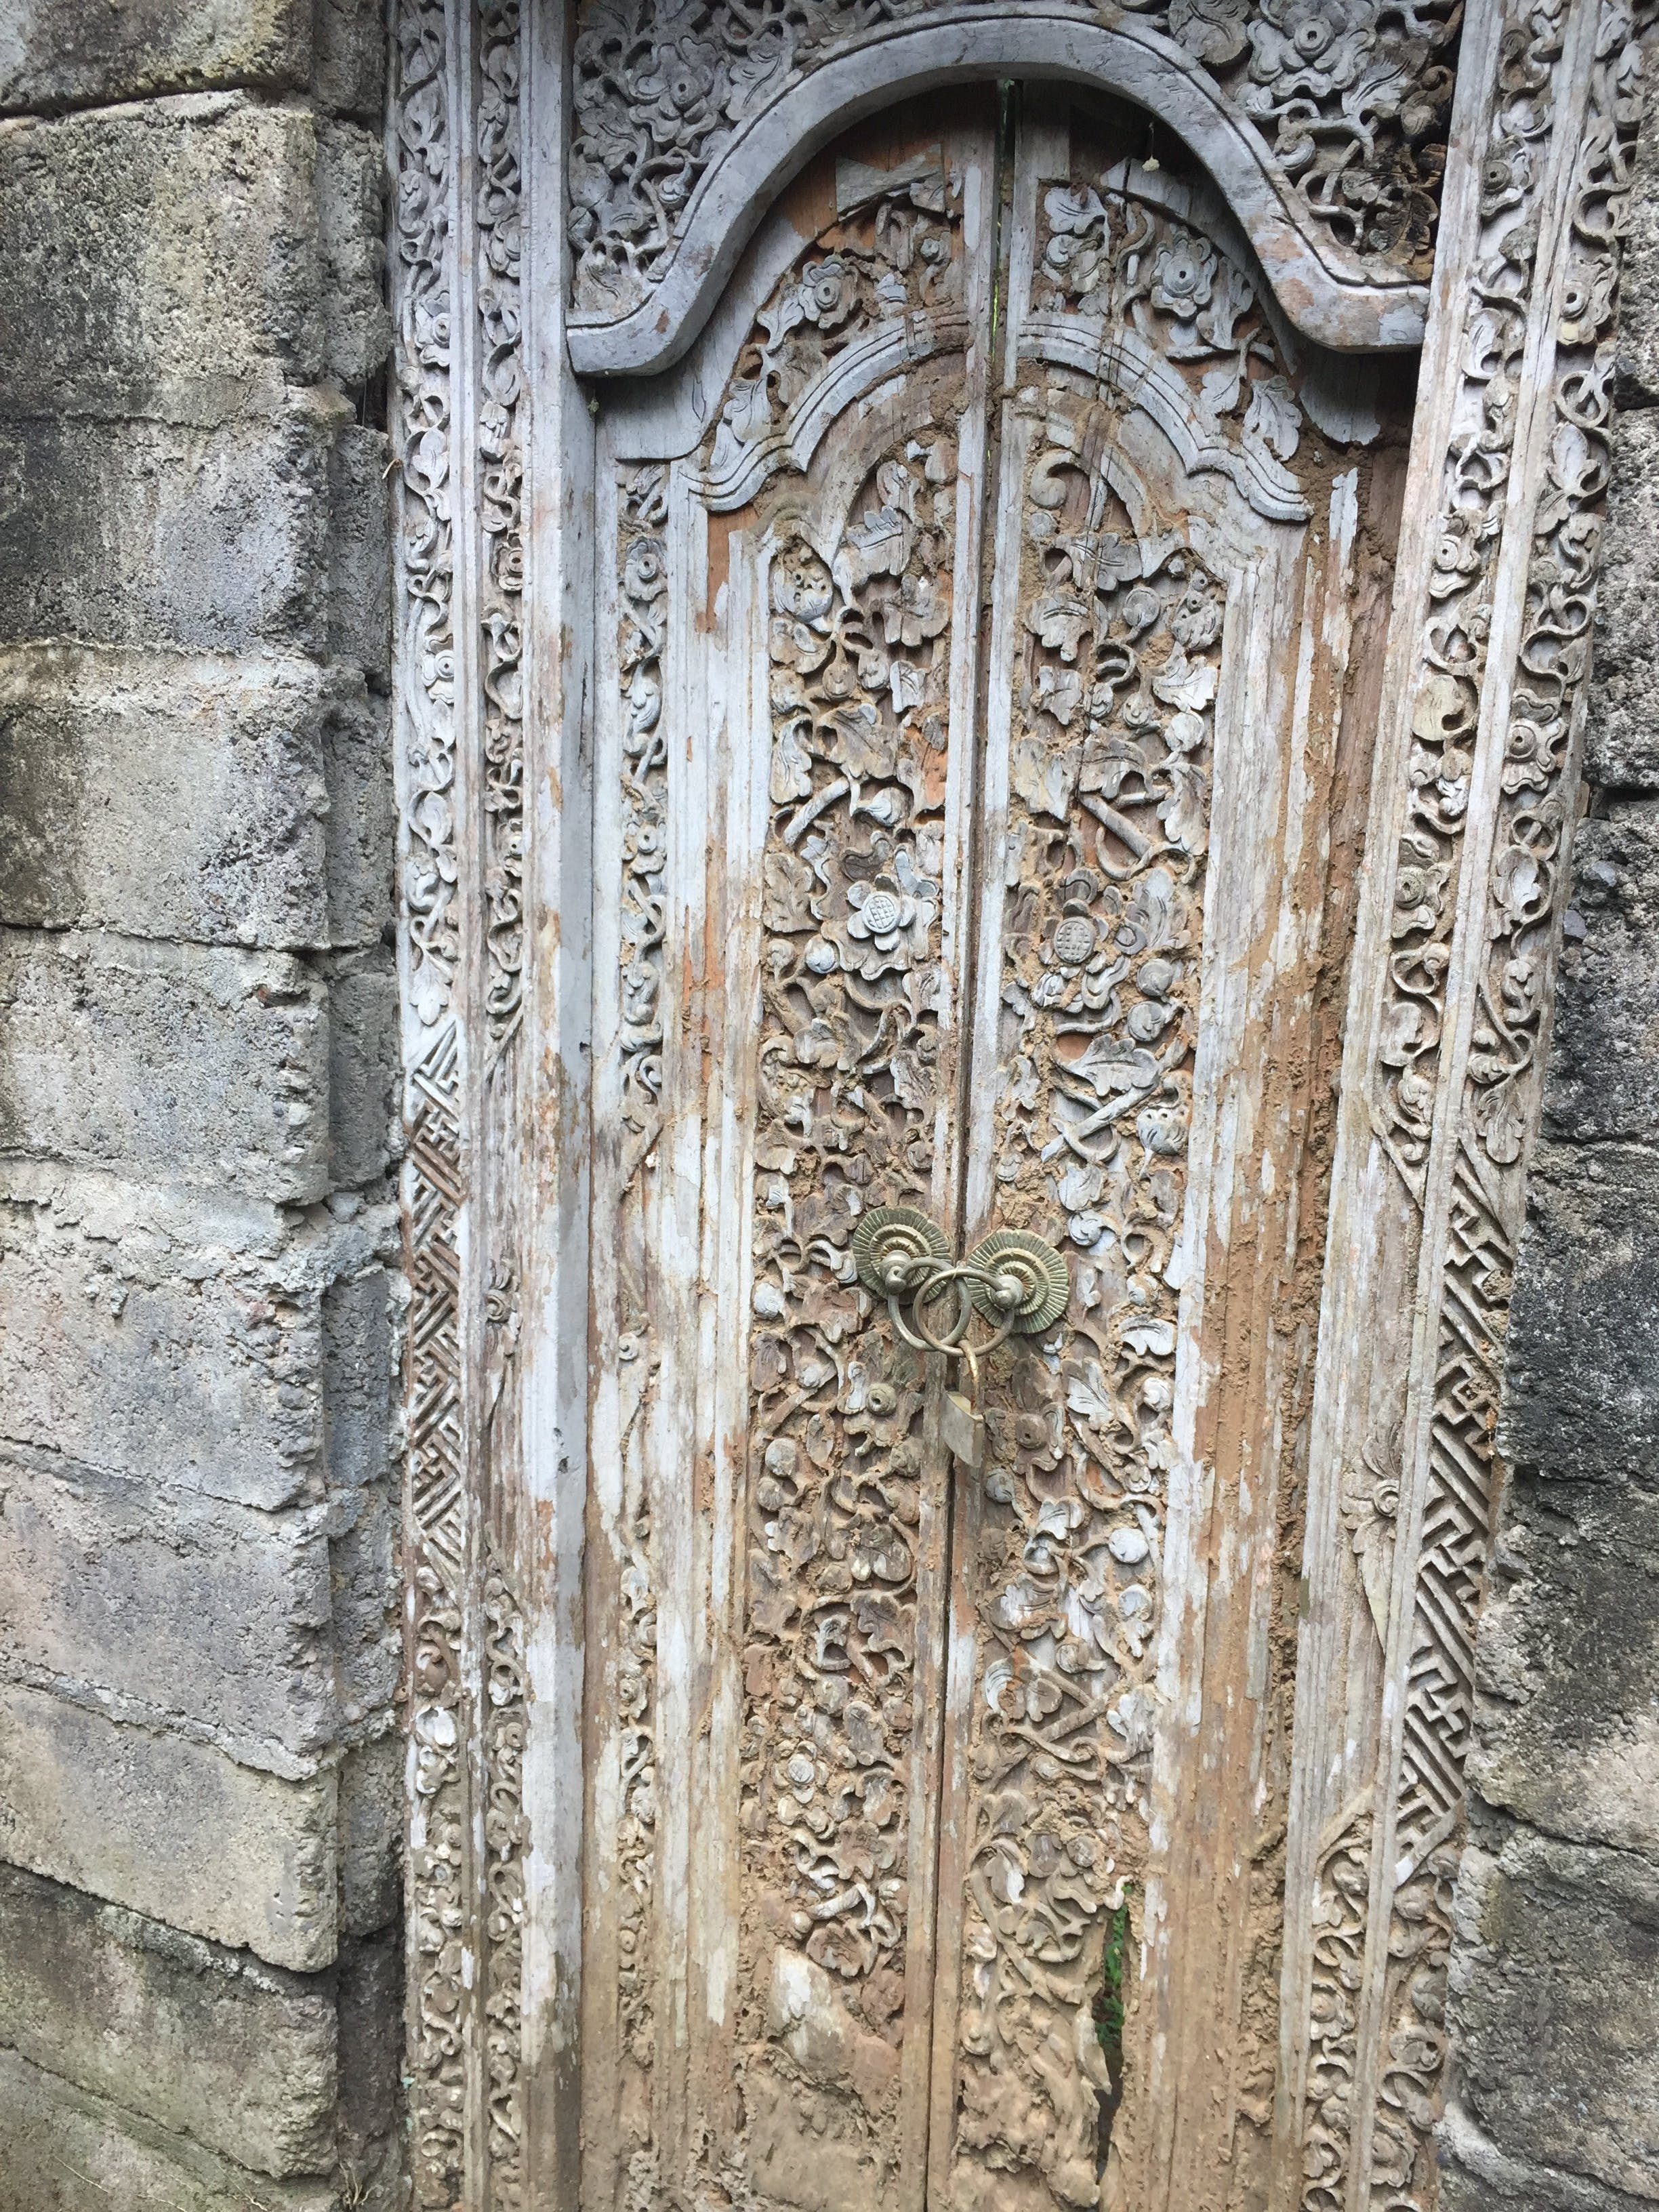 Free stock photo of Wooden carved doors Bali